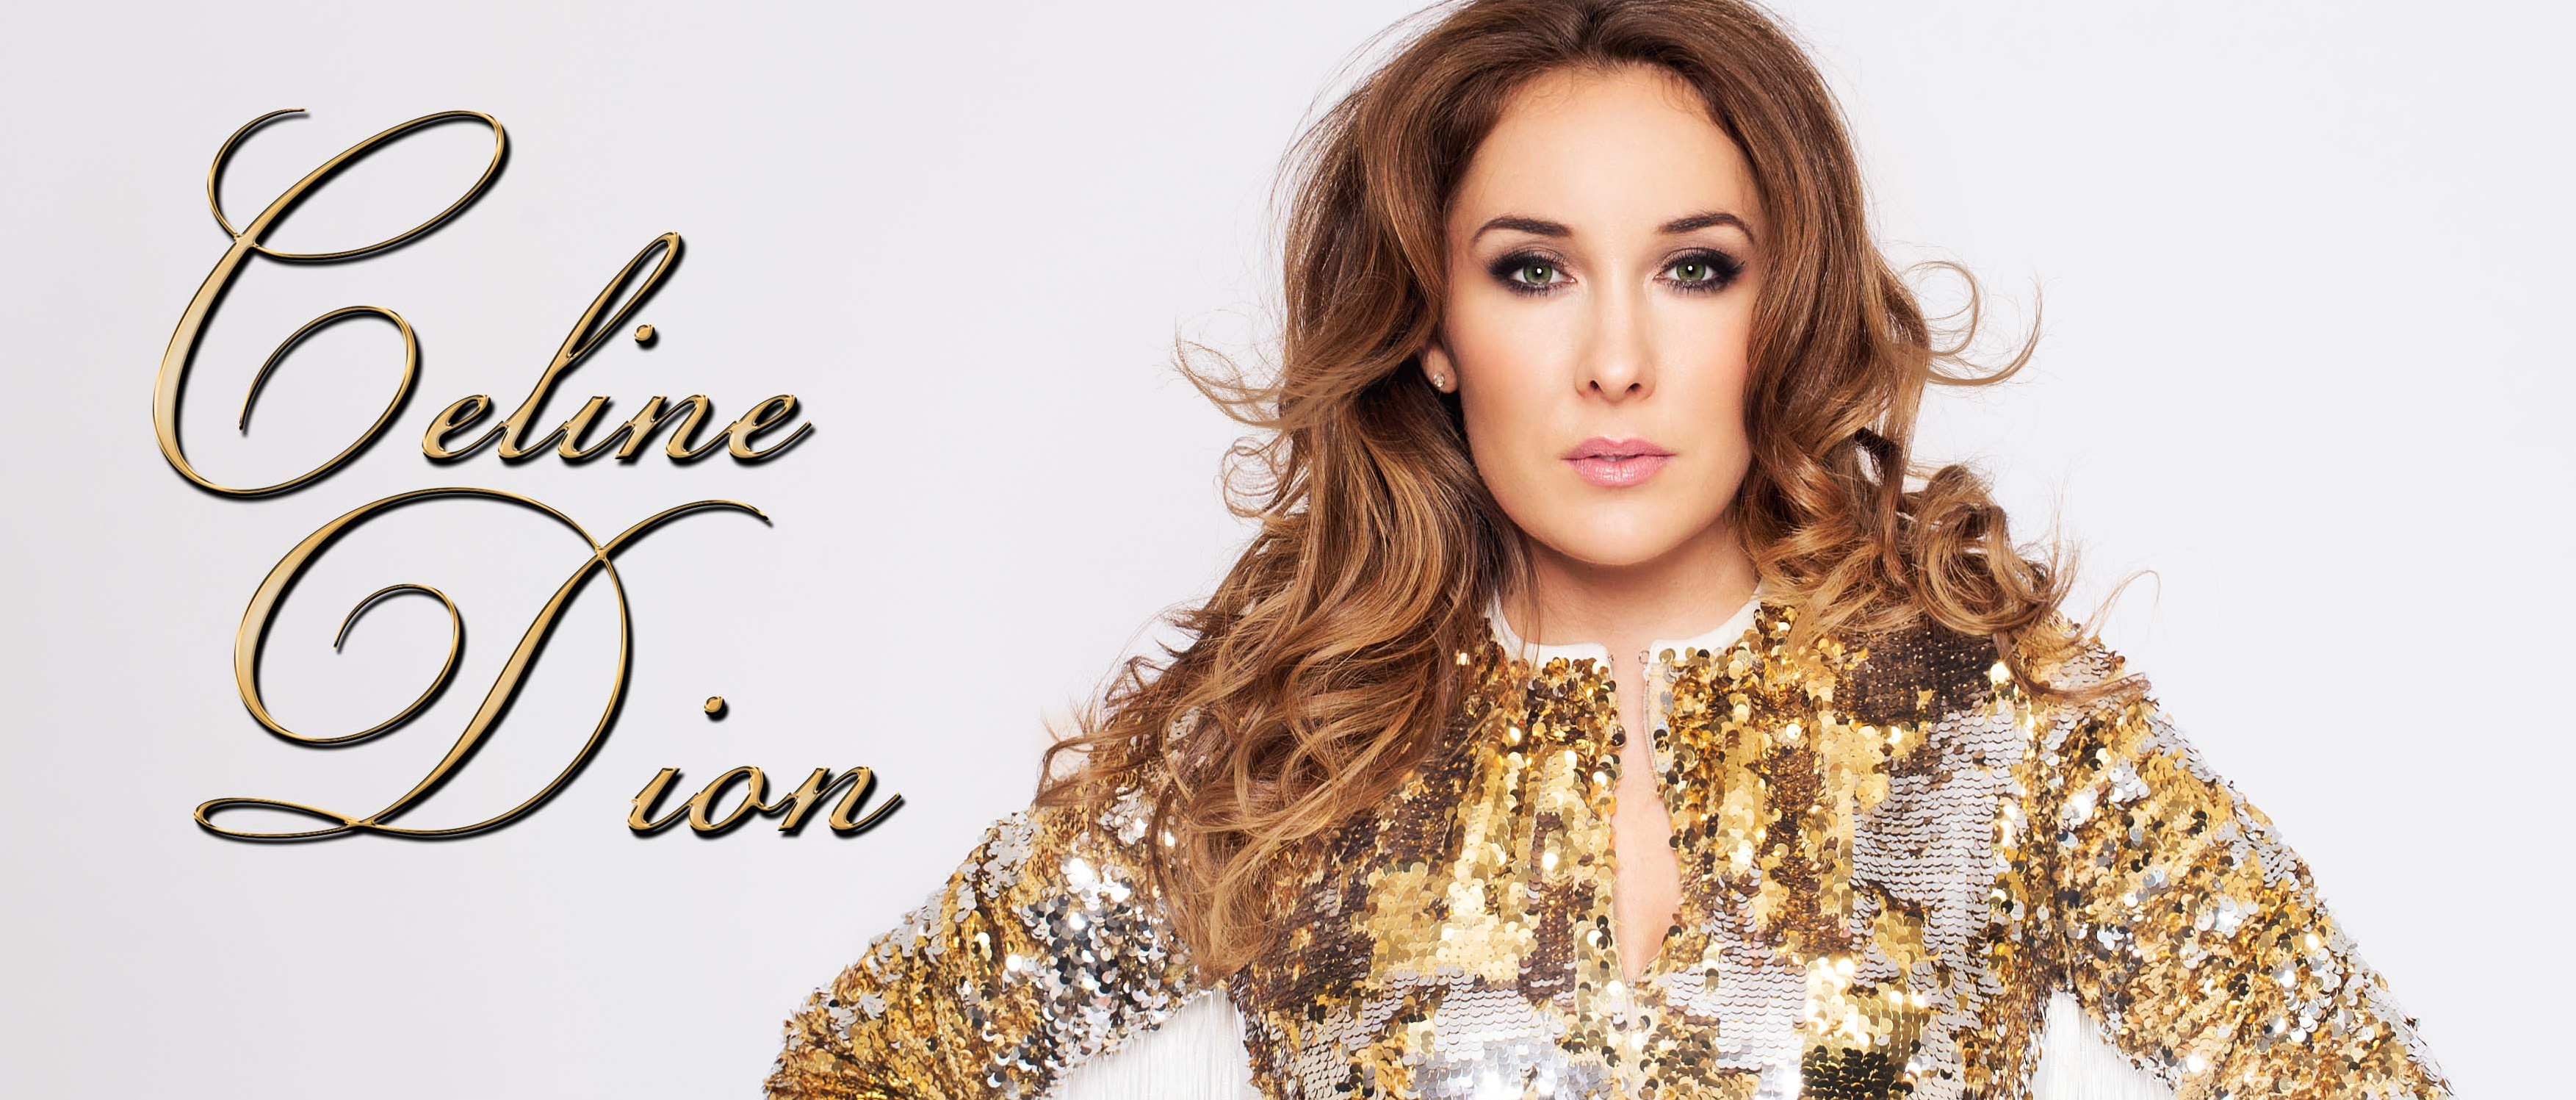 Celine Dion Tribute Act – Anna Slater